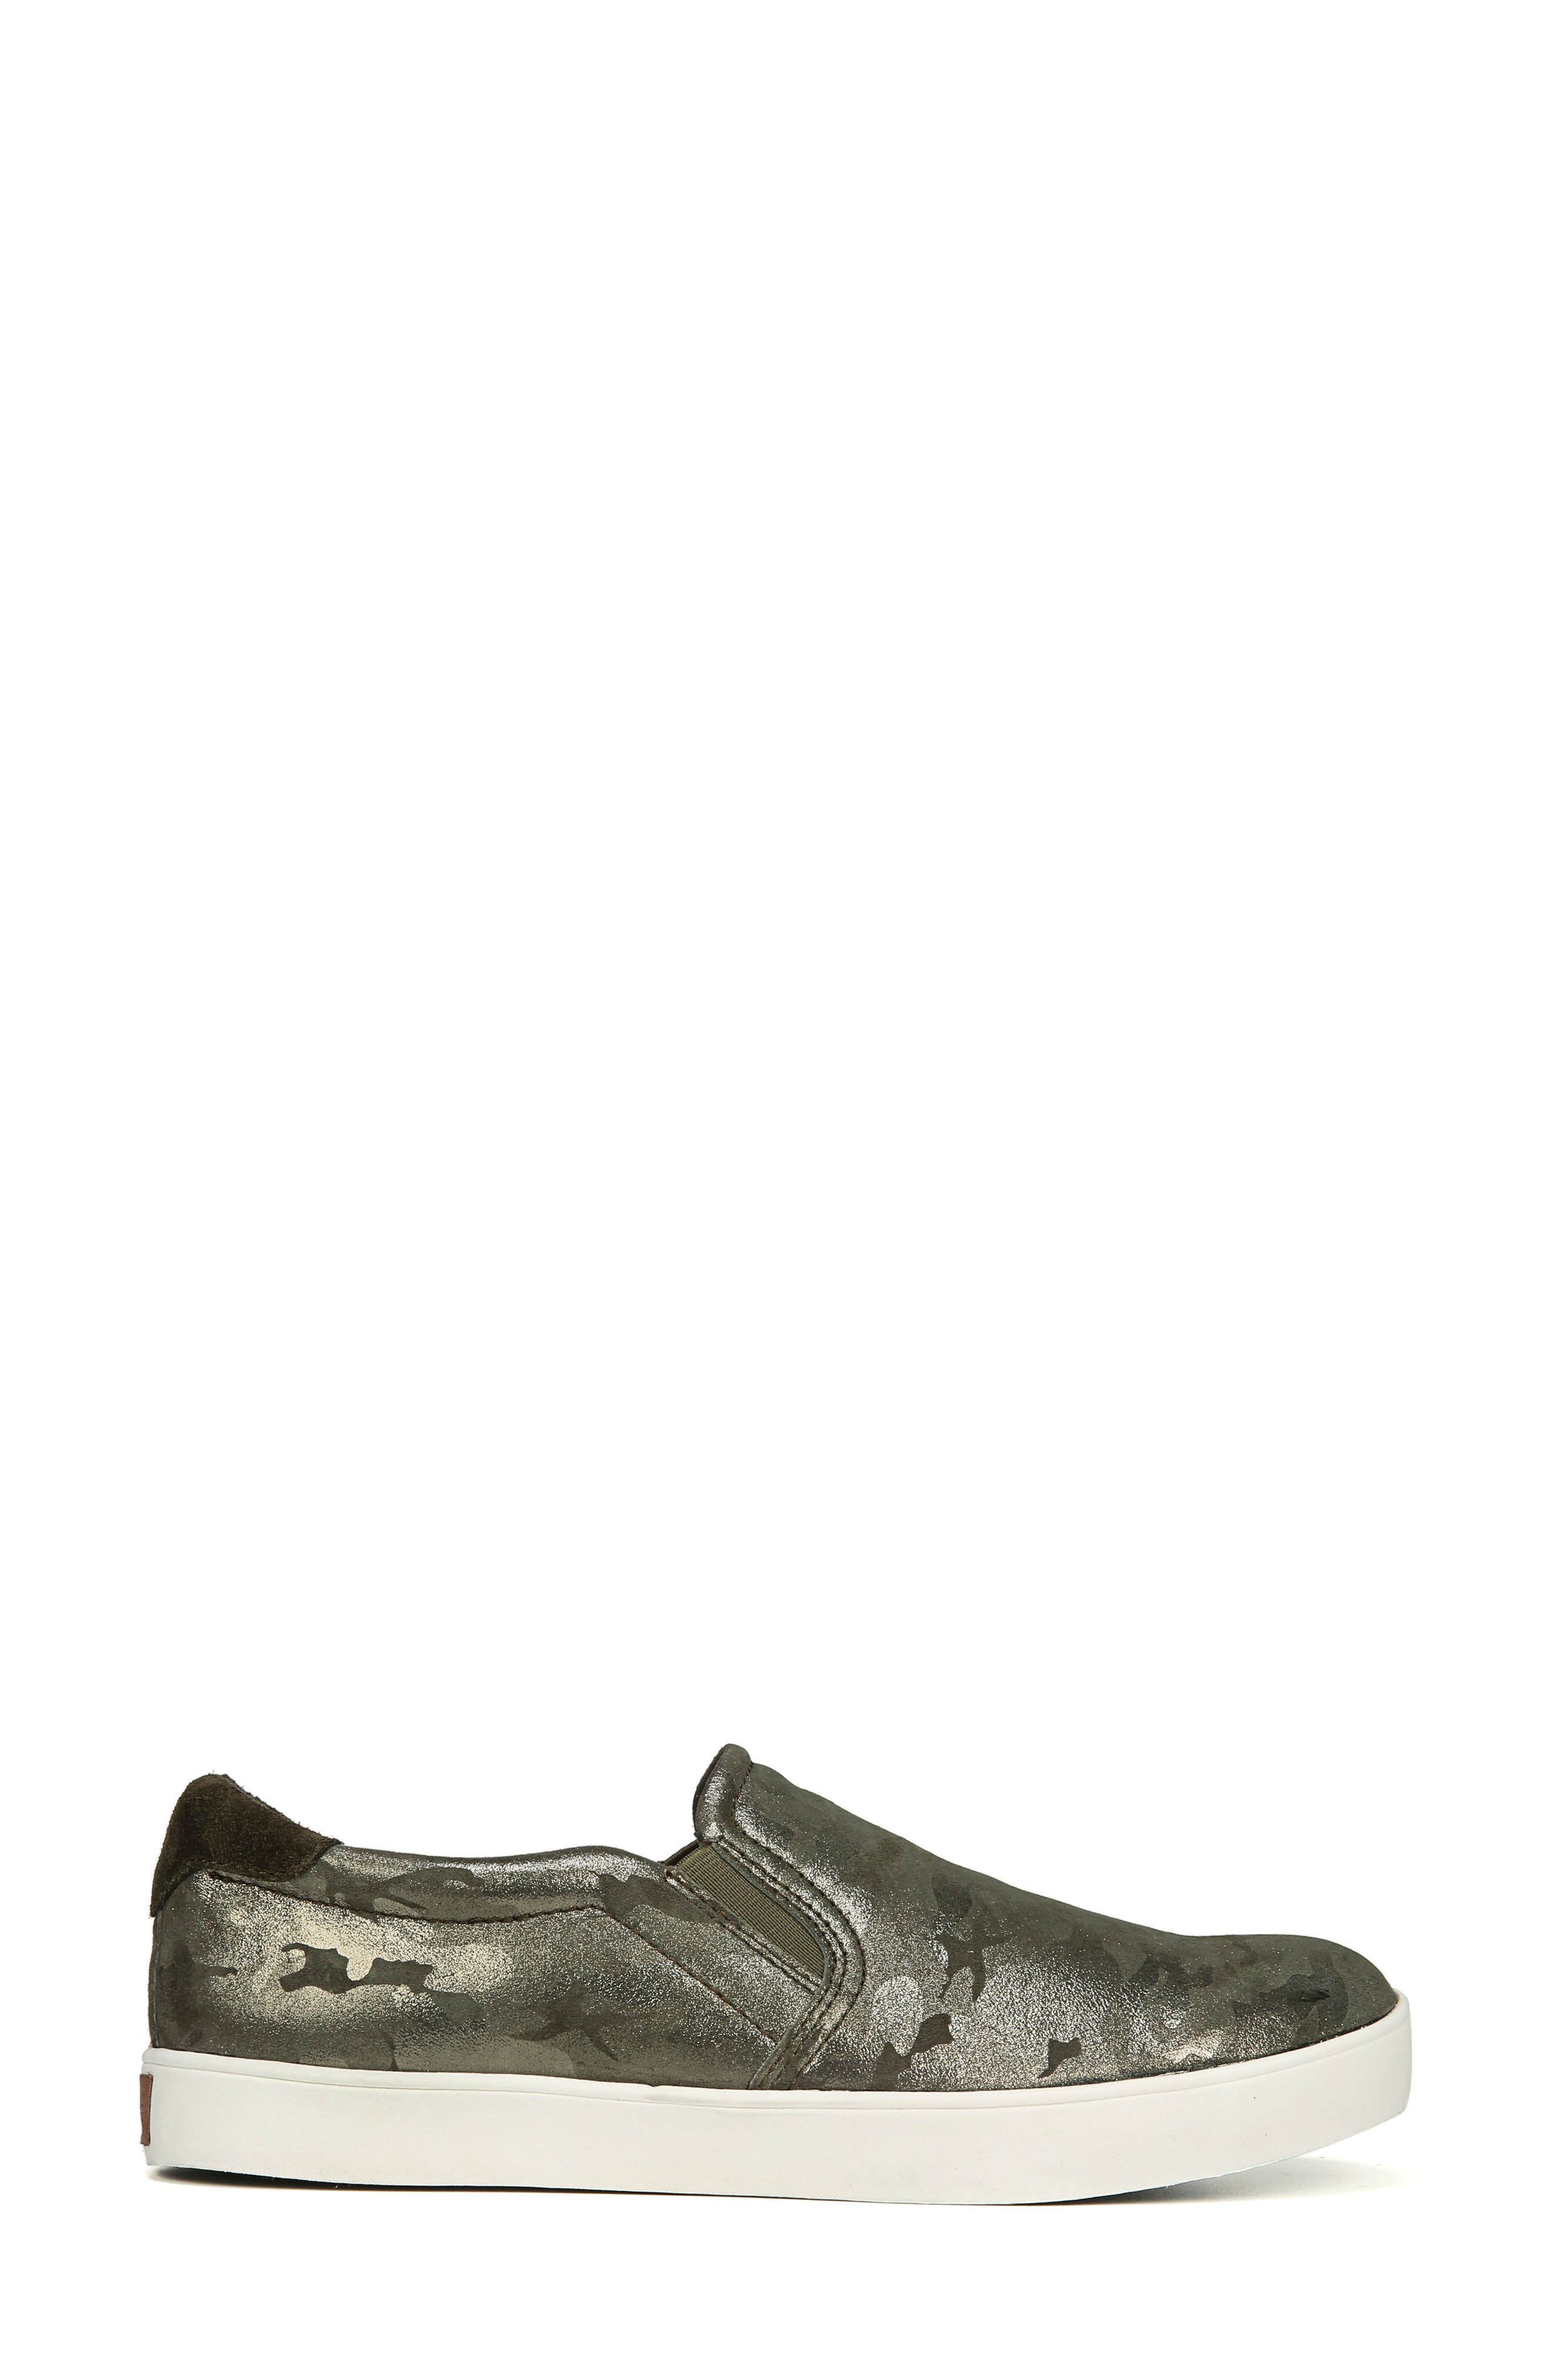 Original Collection 'Scout' Slip On Sneaker,                             Alternate thumbnail 3, color,                             GREEN LEATHER